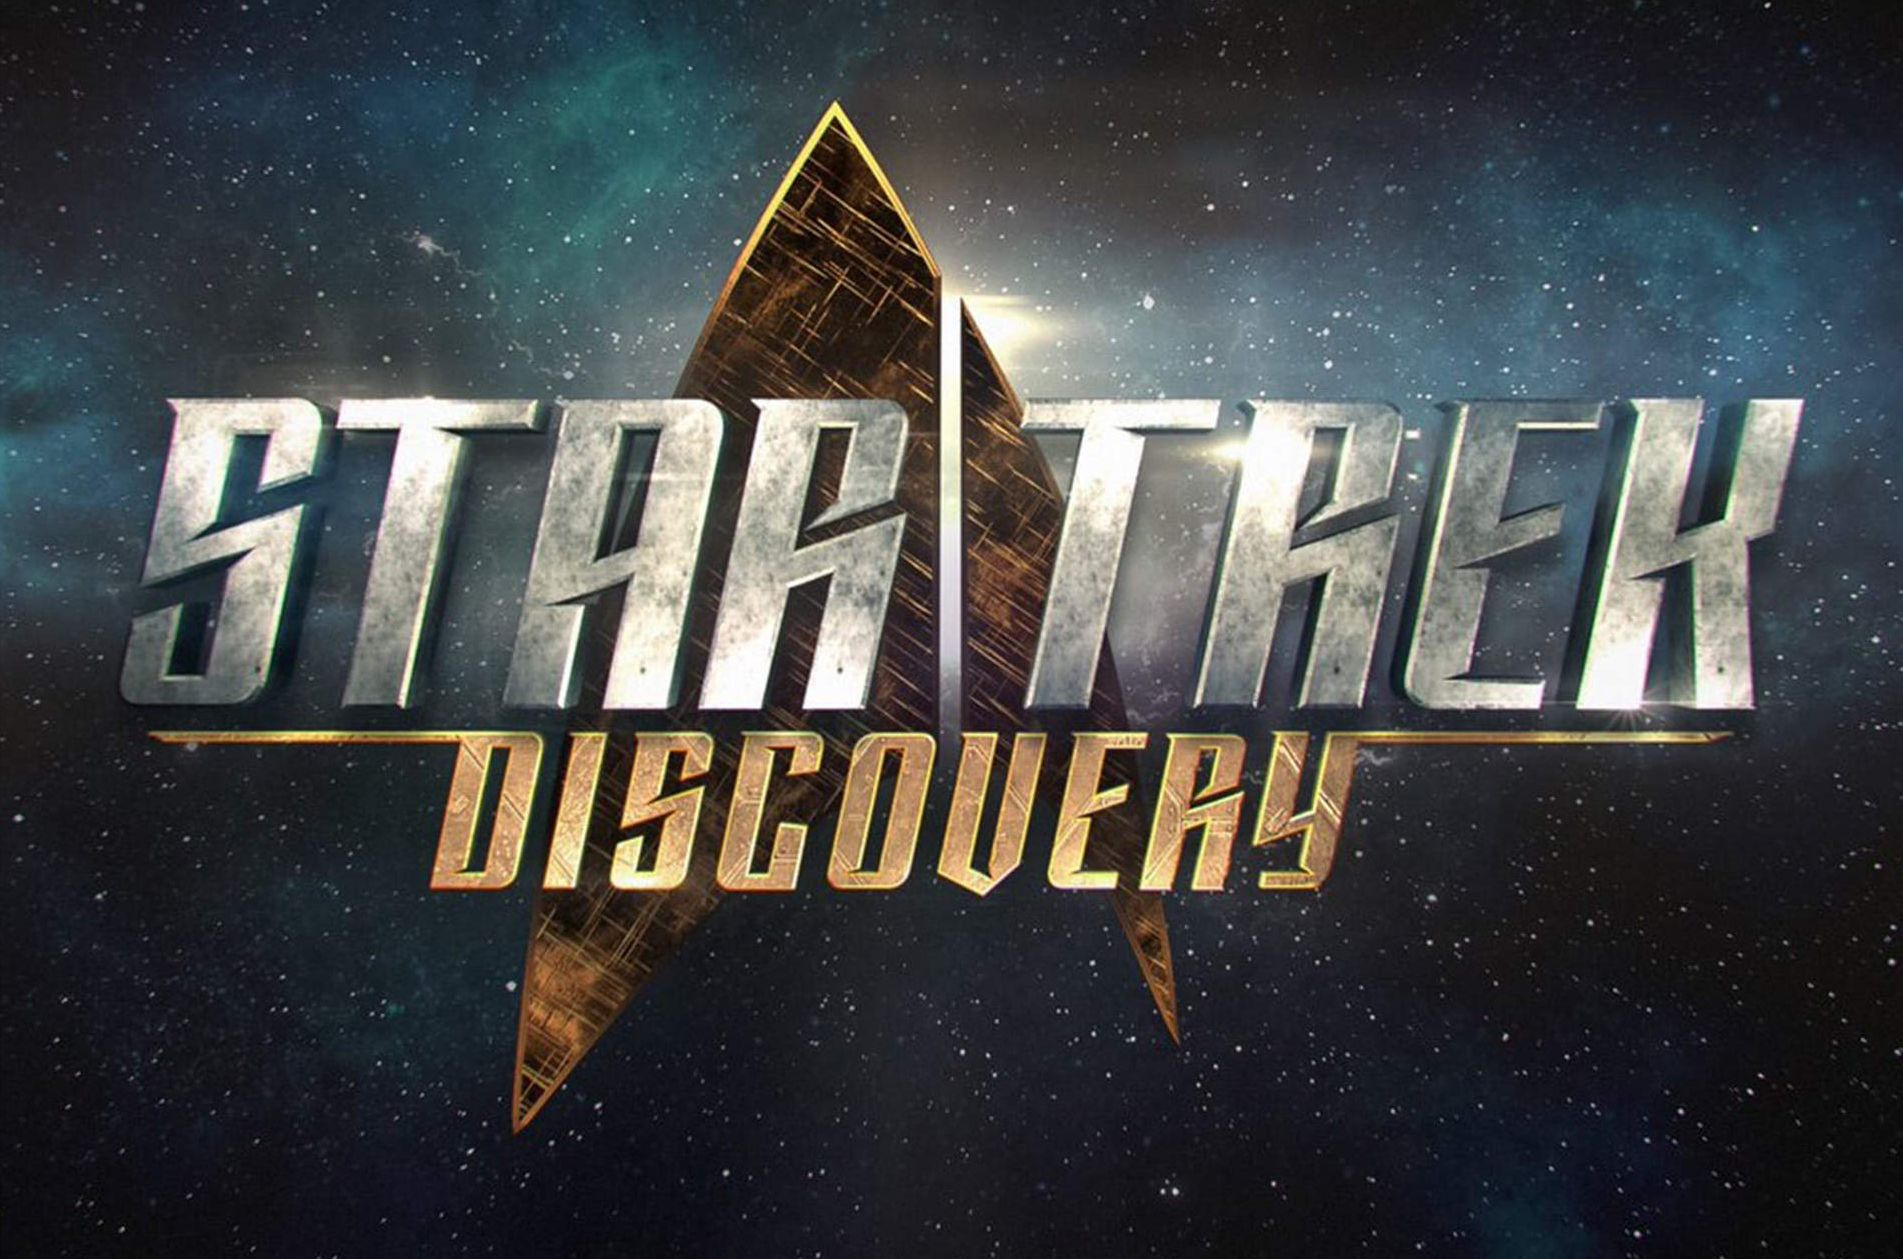 Star Trek Discover titles